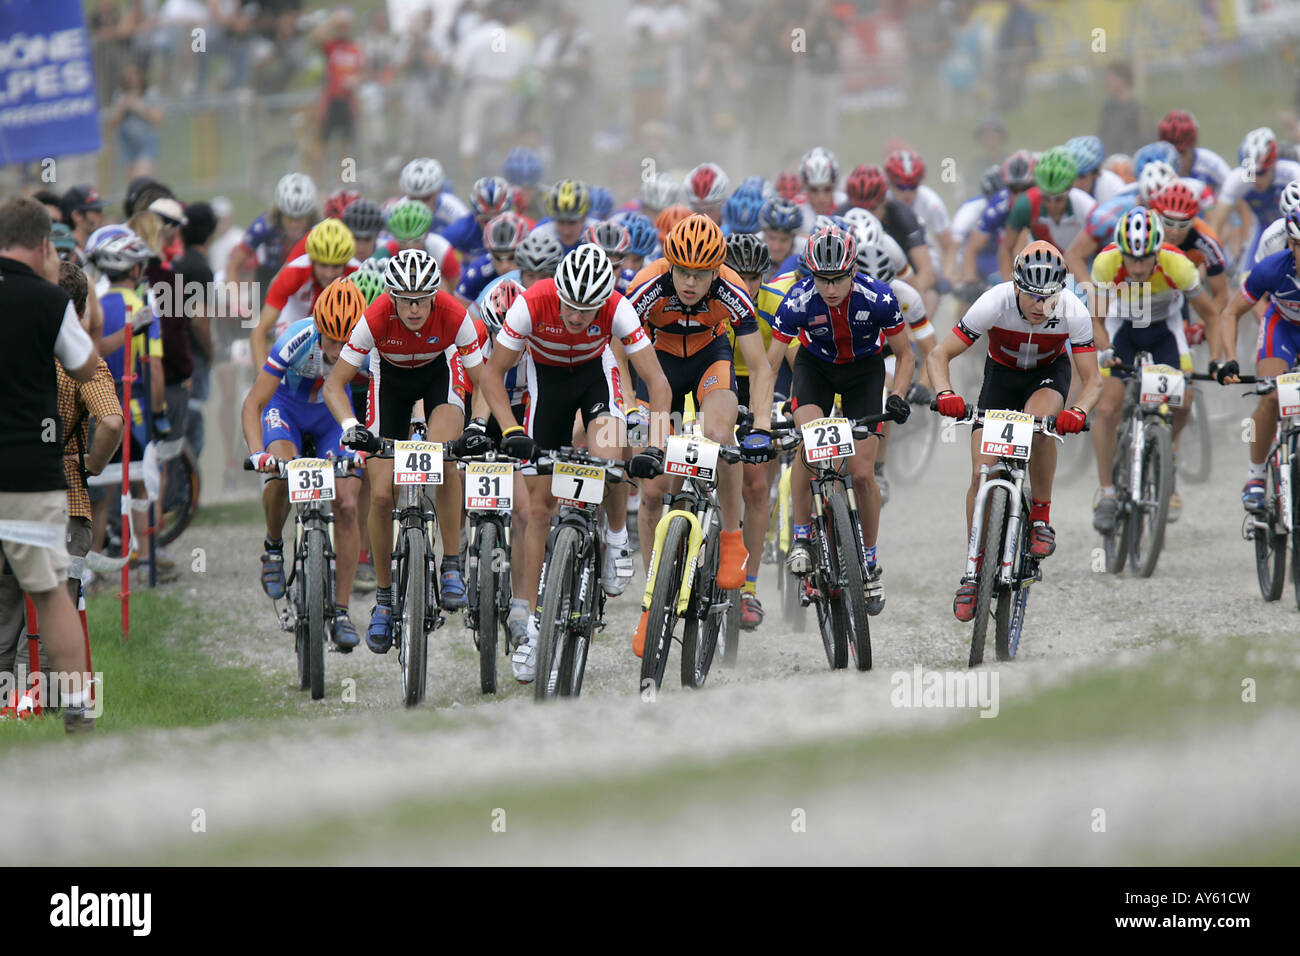 The start of a cross country mountain bike race - Stock Image